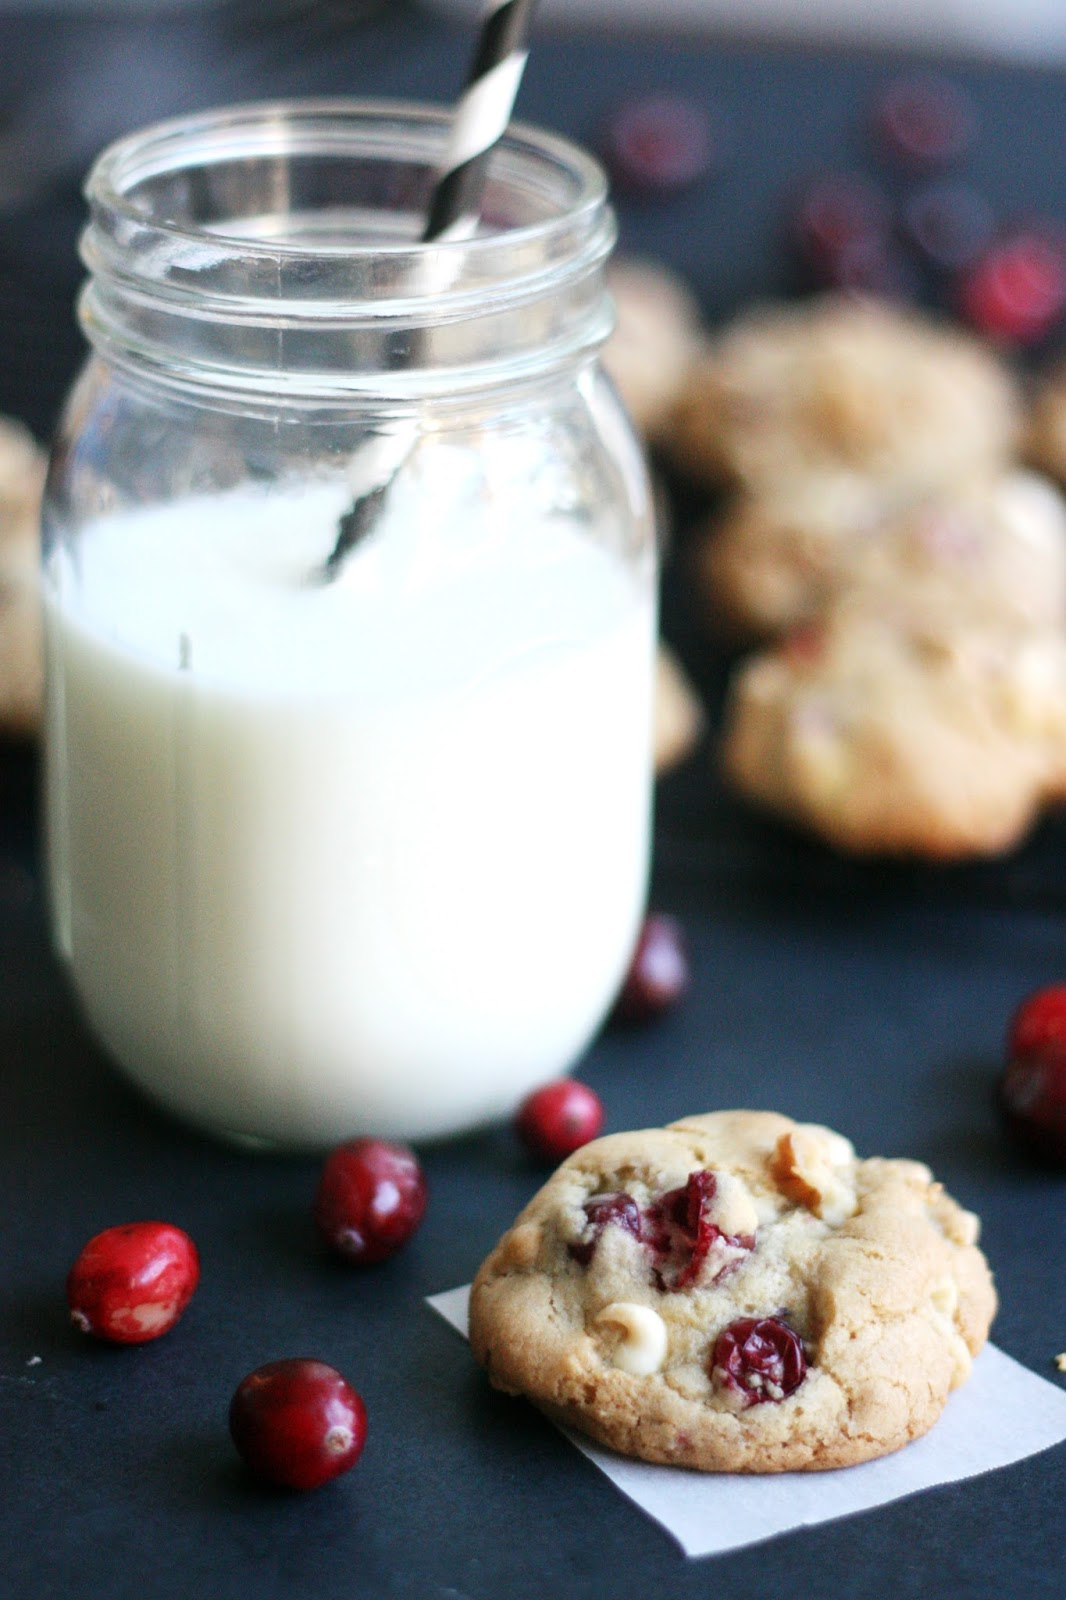 Top 5 Christmas Cookie Recipes - Photo by The Pretty Life Girls | Squirrelly Minds